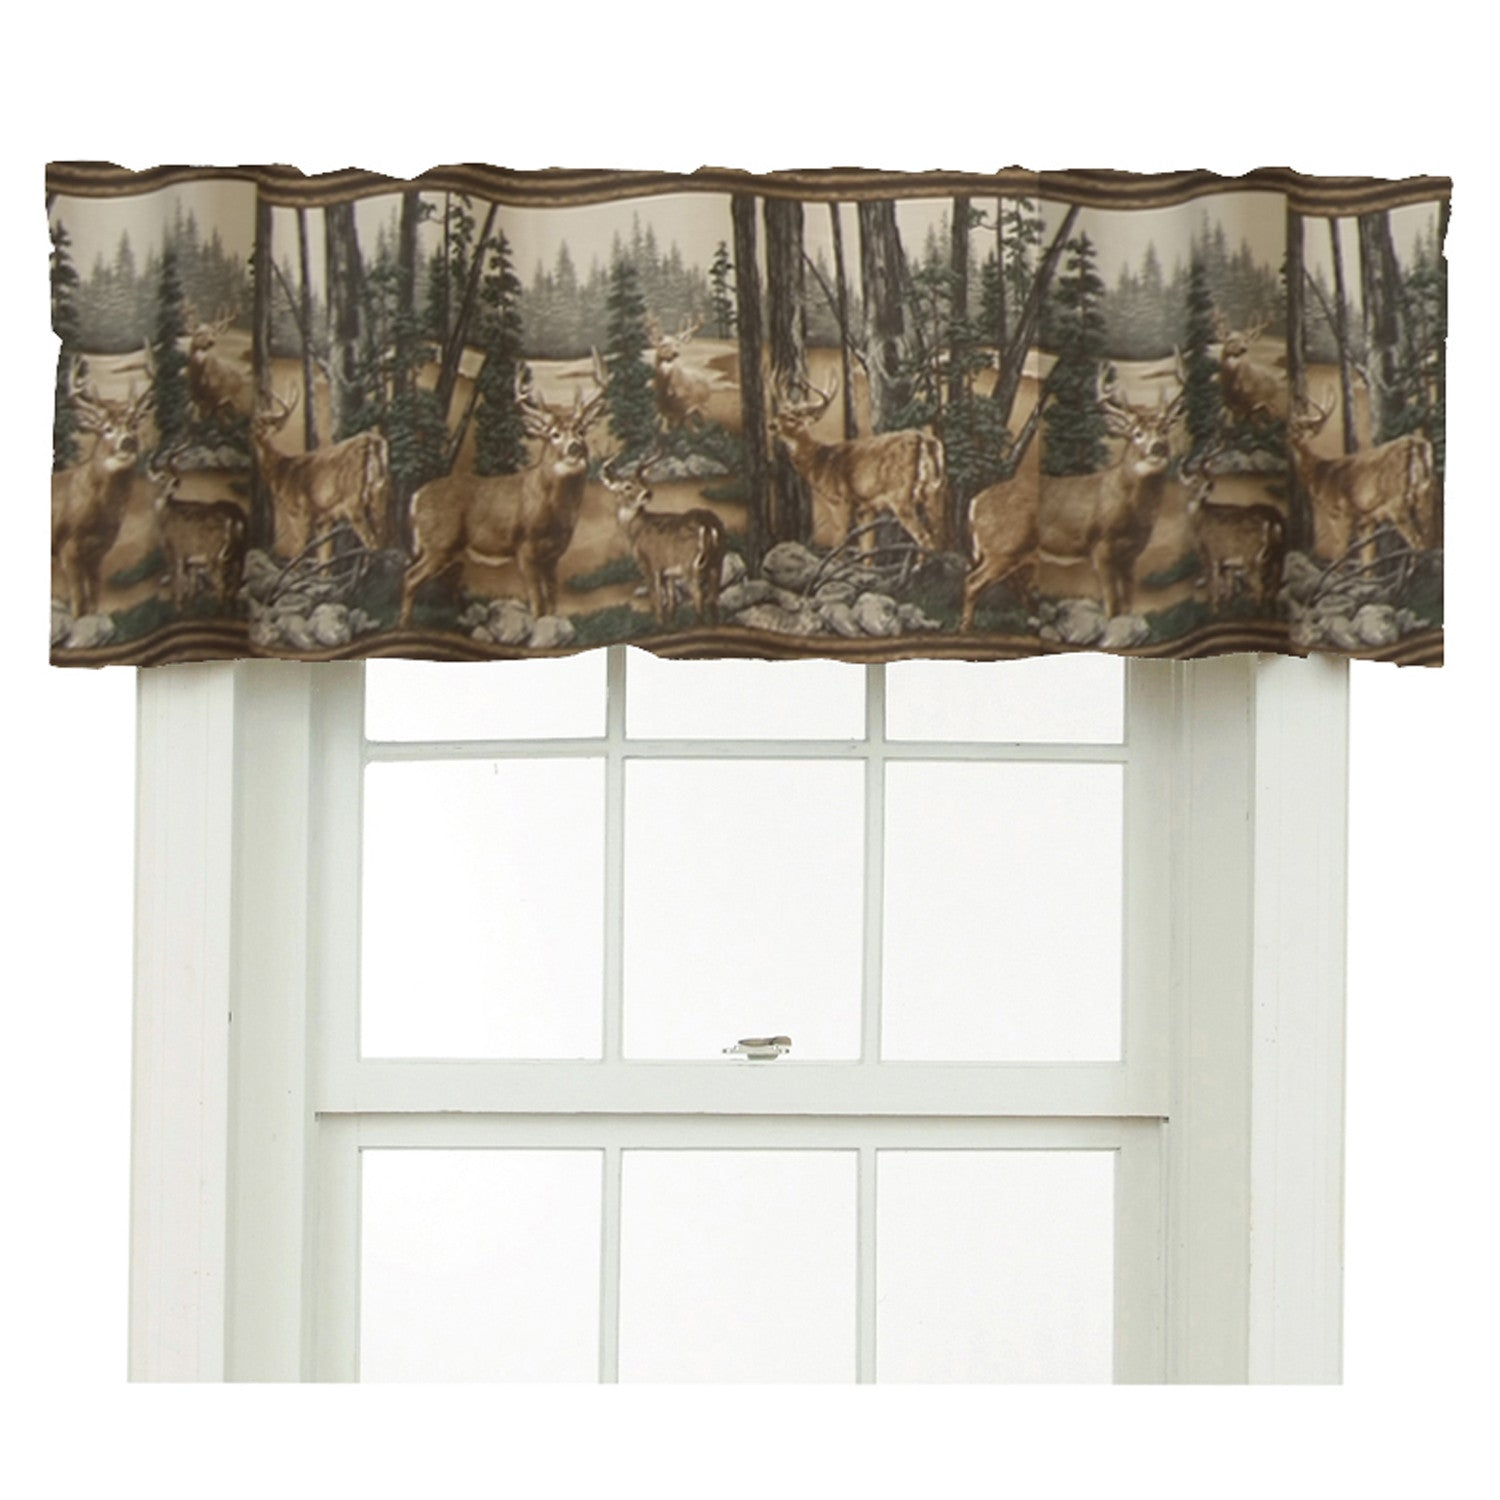 Whitetail Dreams Valance - Back40Trading2